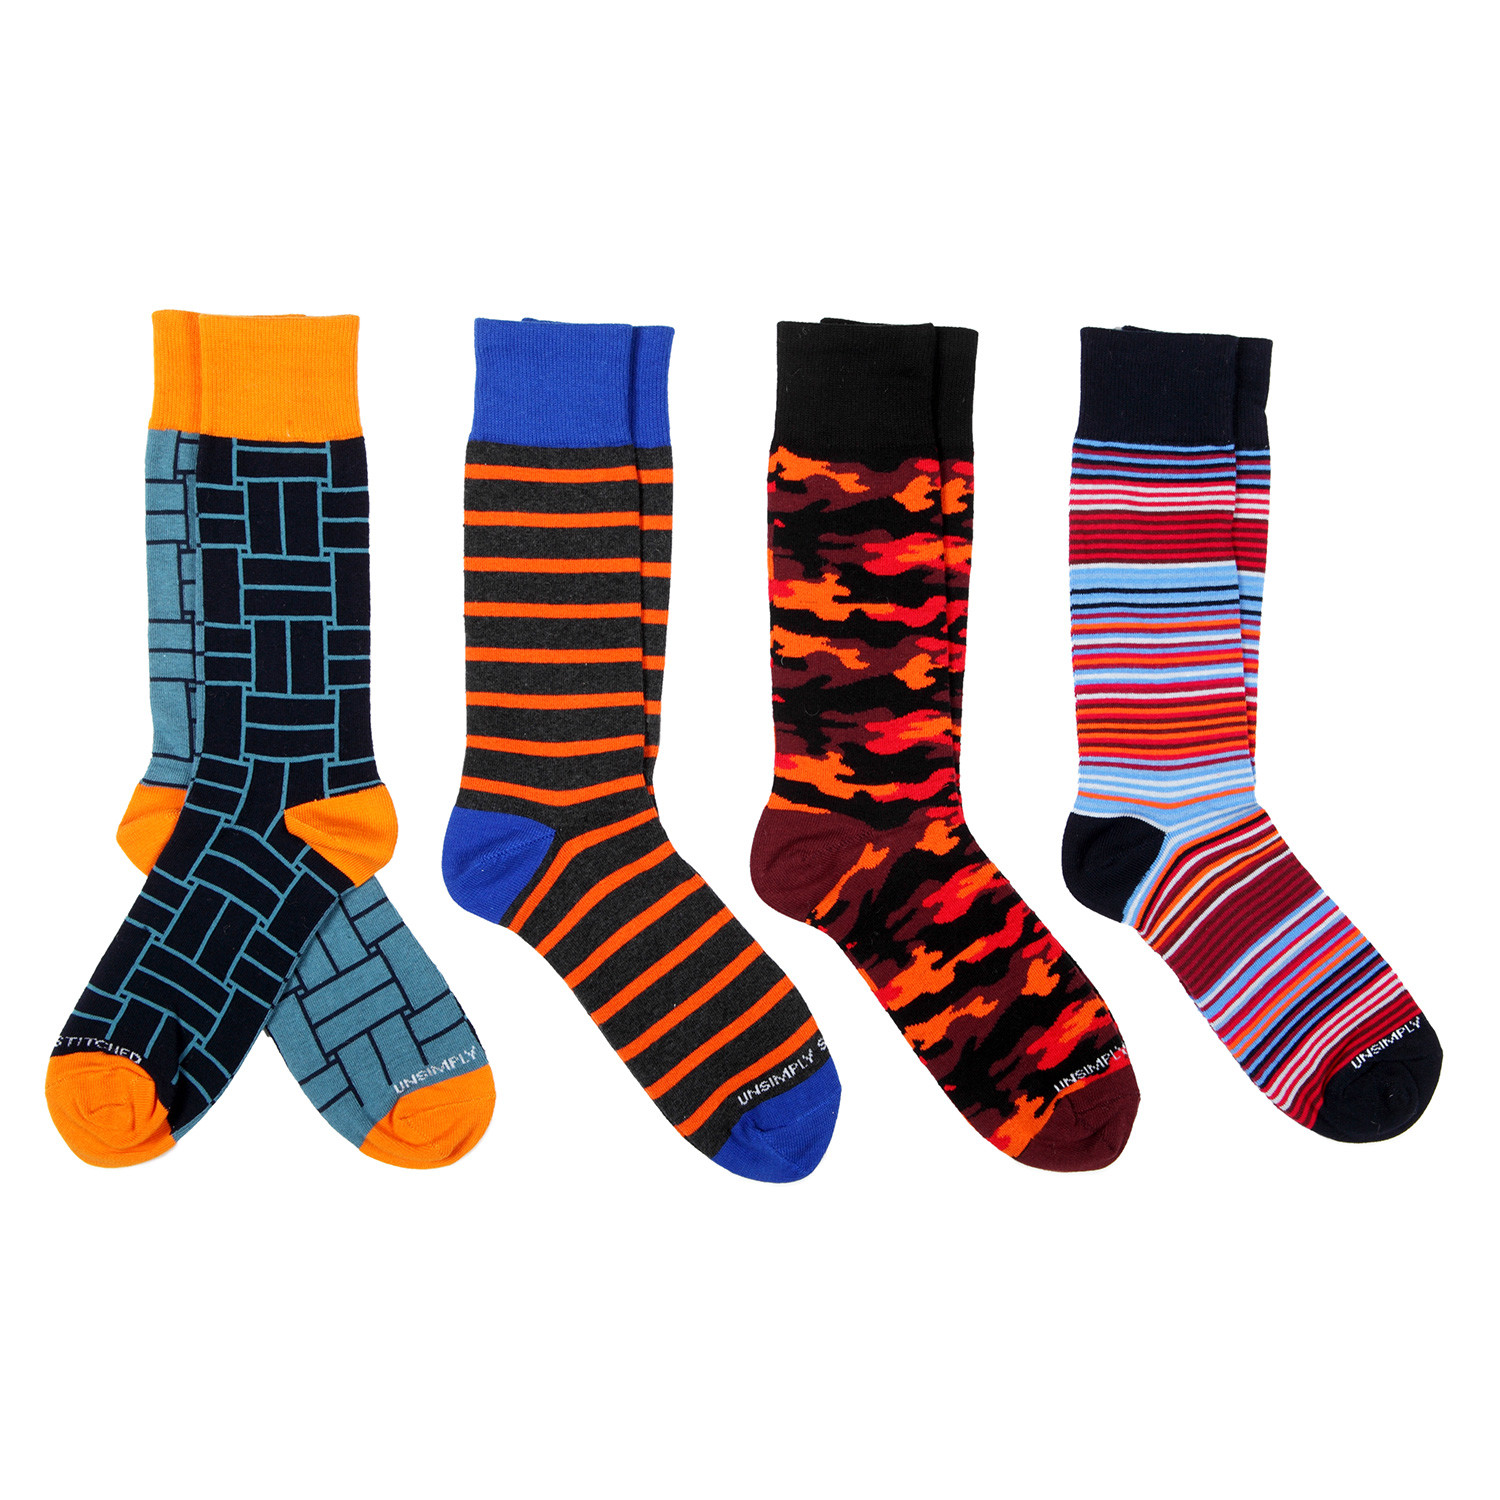 Dress socks stripe mix pack of 4 unsimply stitched touch of